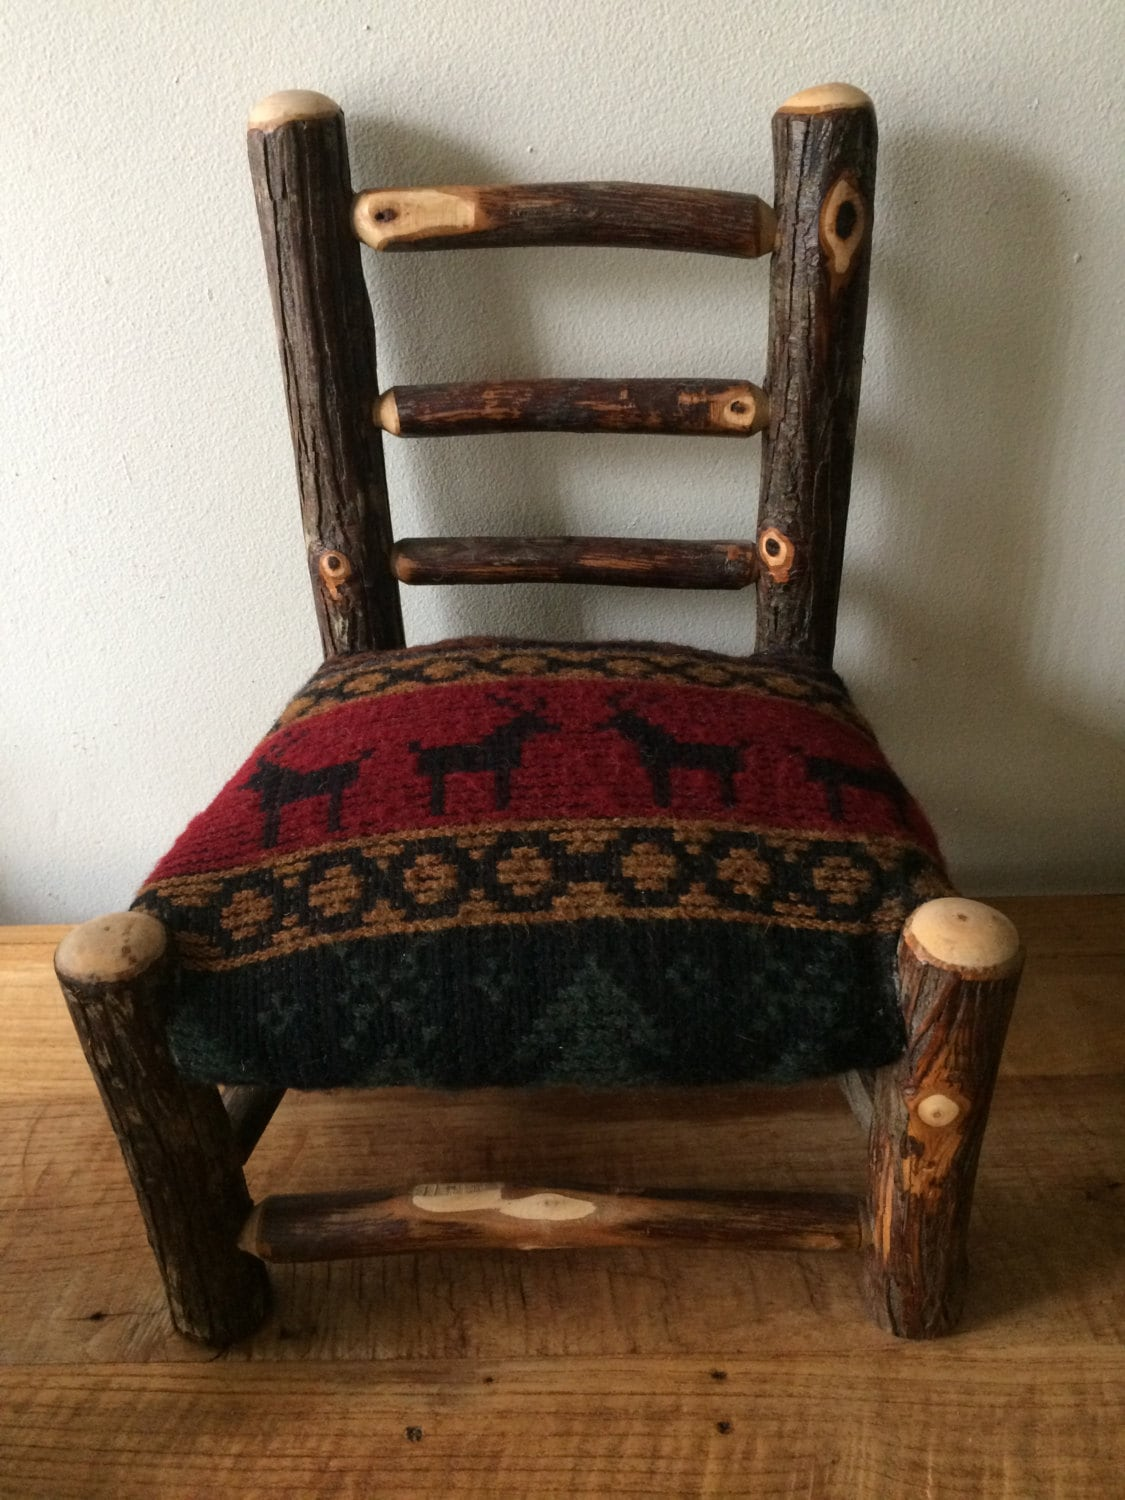 Small Upholstered Rustic Log Chair - Cabin Decor